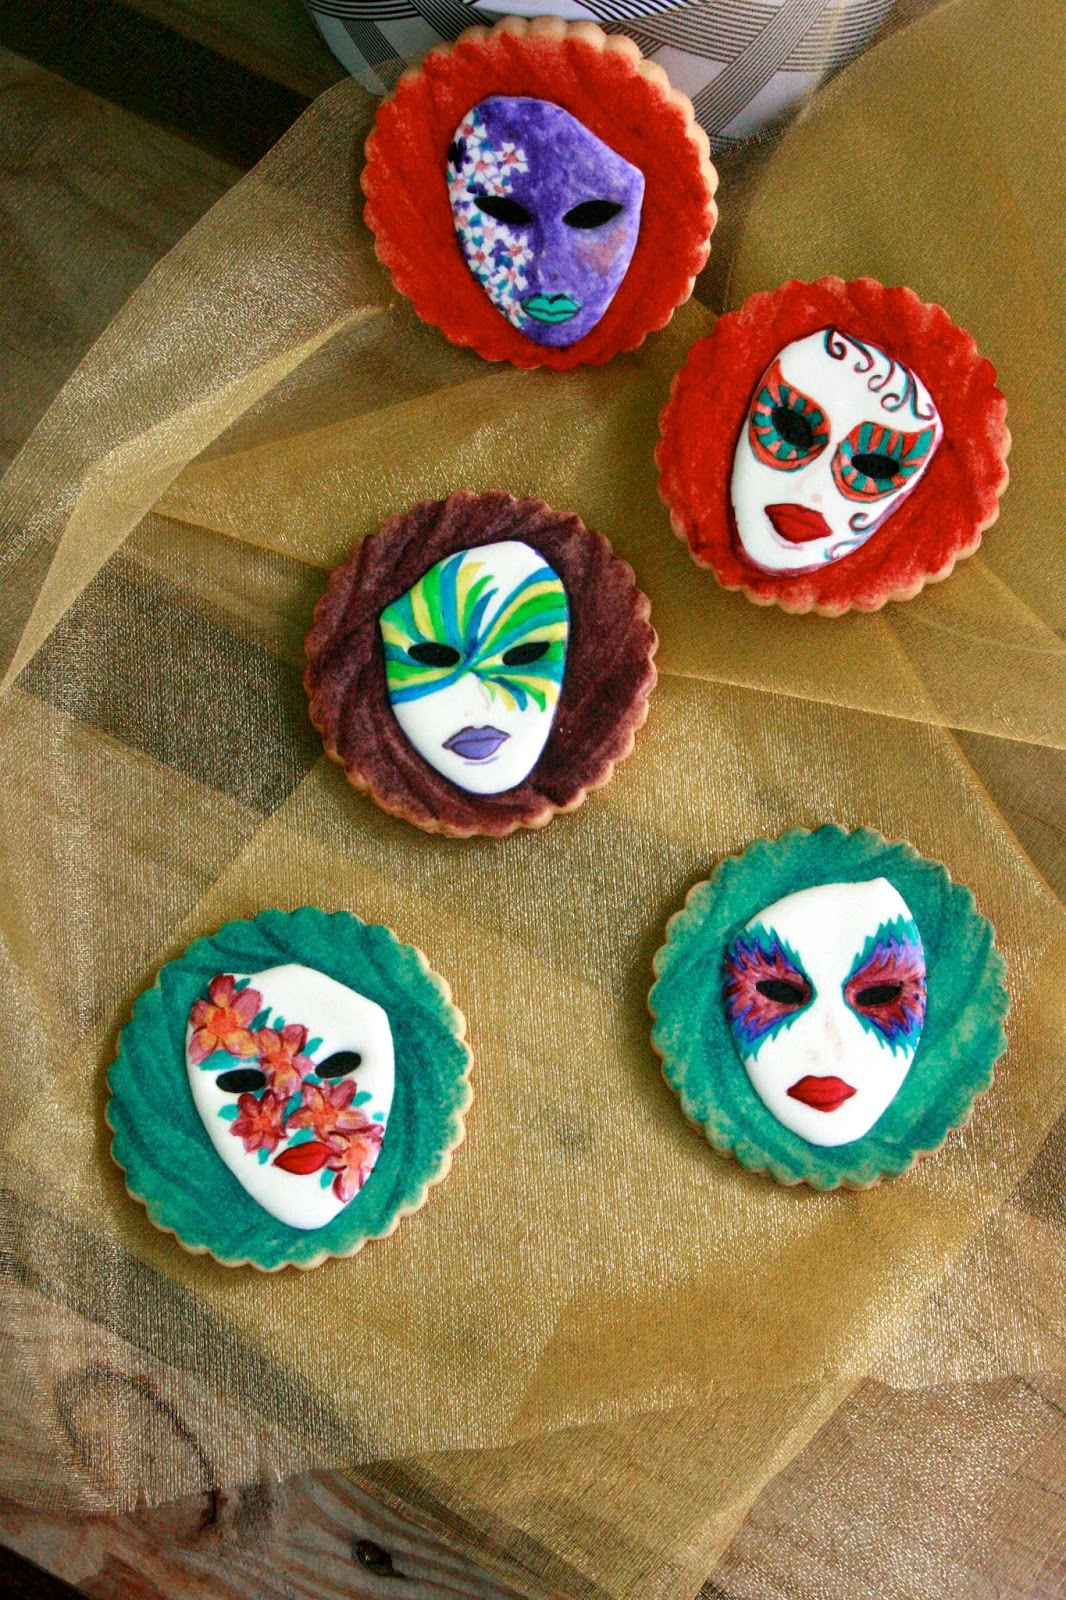 Galletas decoradas de mascaras con glasa y pintadas a mano